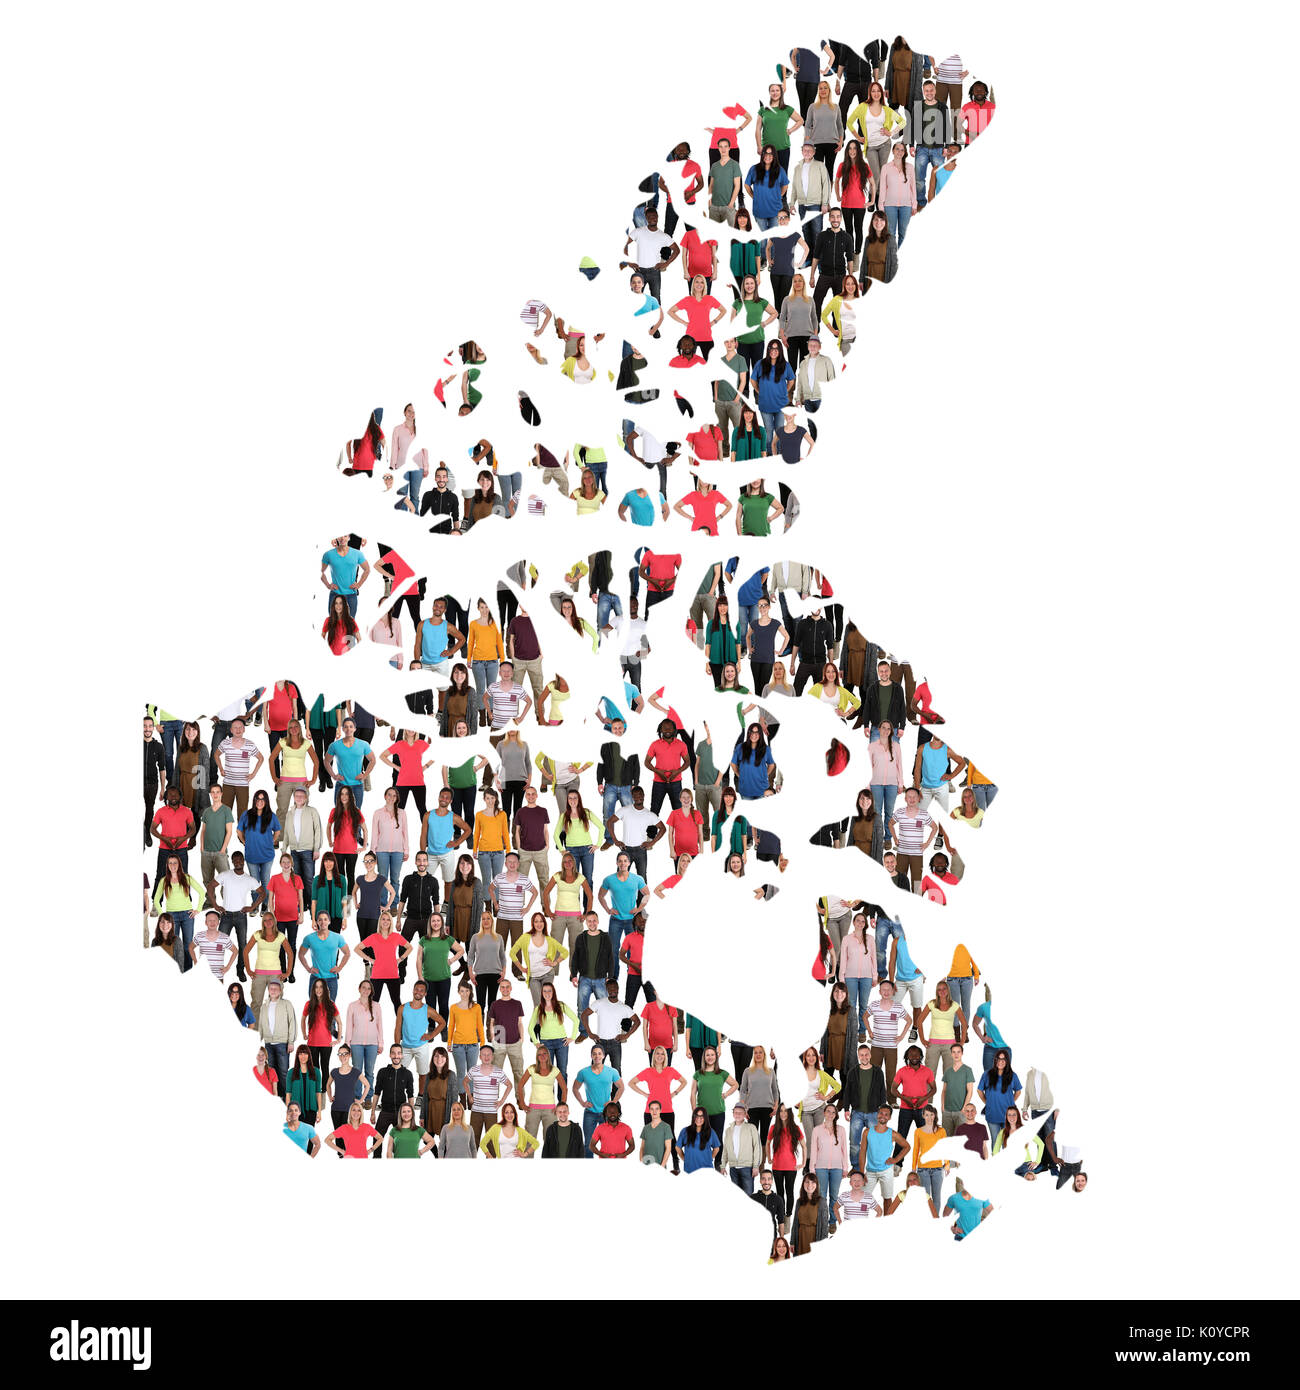 Canada map multicultural group of people integration immigration diversity isolated - Stock Image